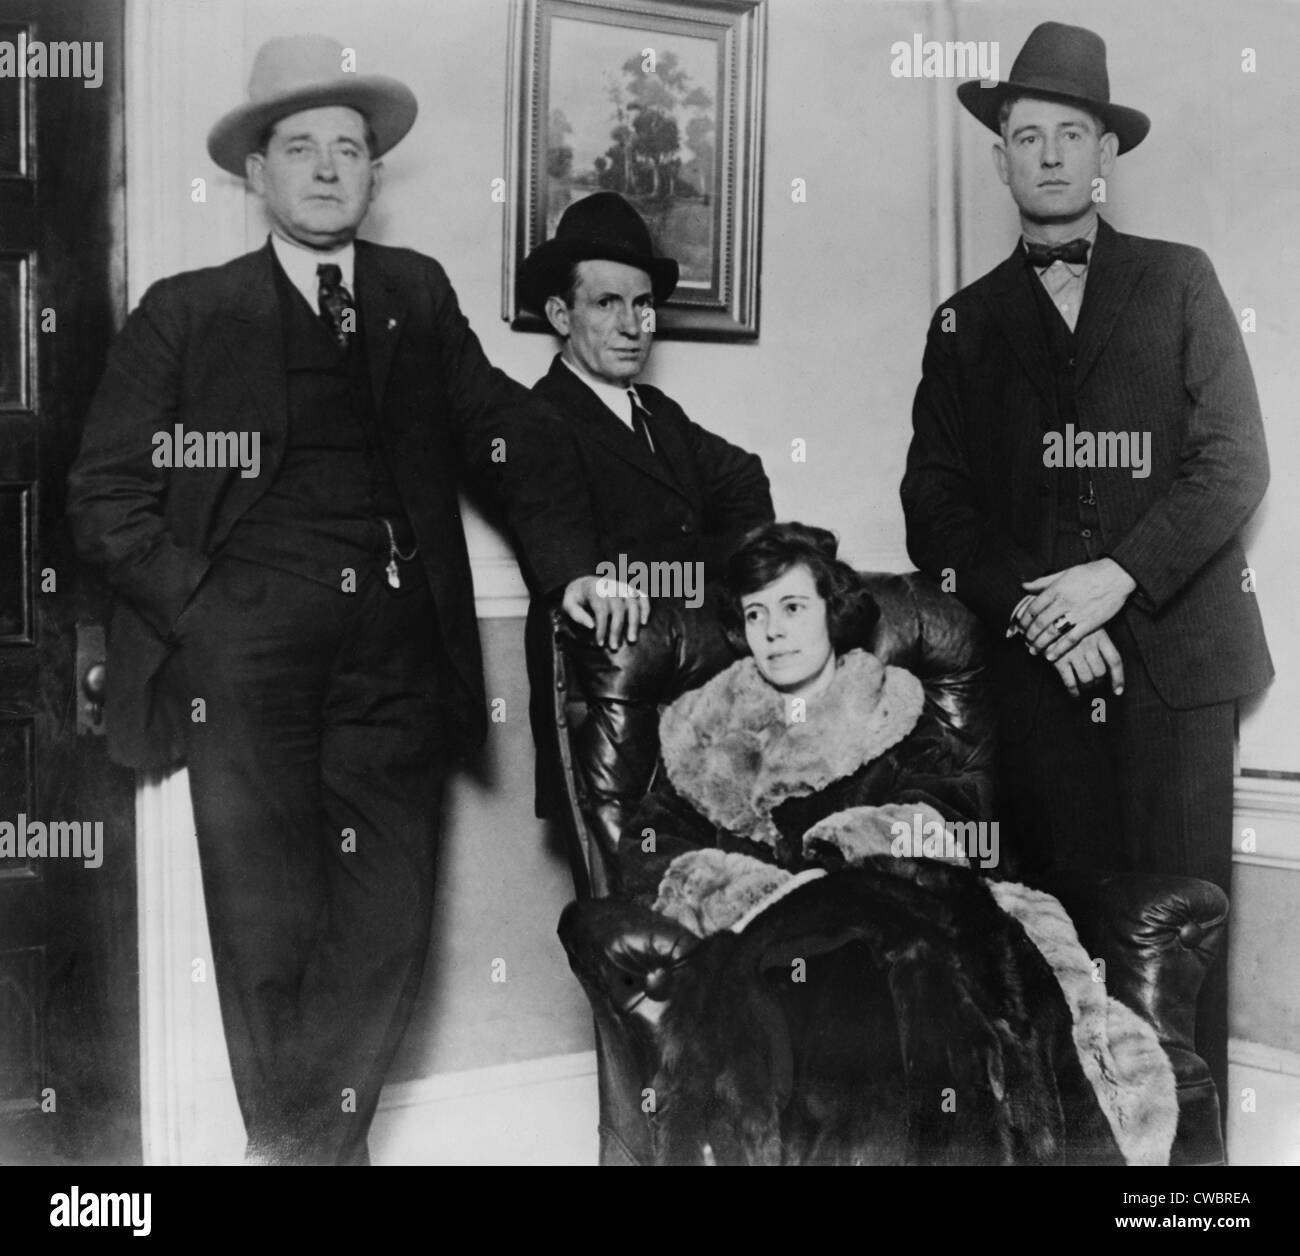 Clara Smith Hamon, secretary and lover to politically connected Texas oilman Jake L. Hamon, under arrest for his - Stock Image